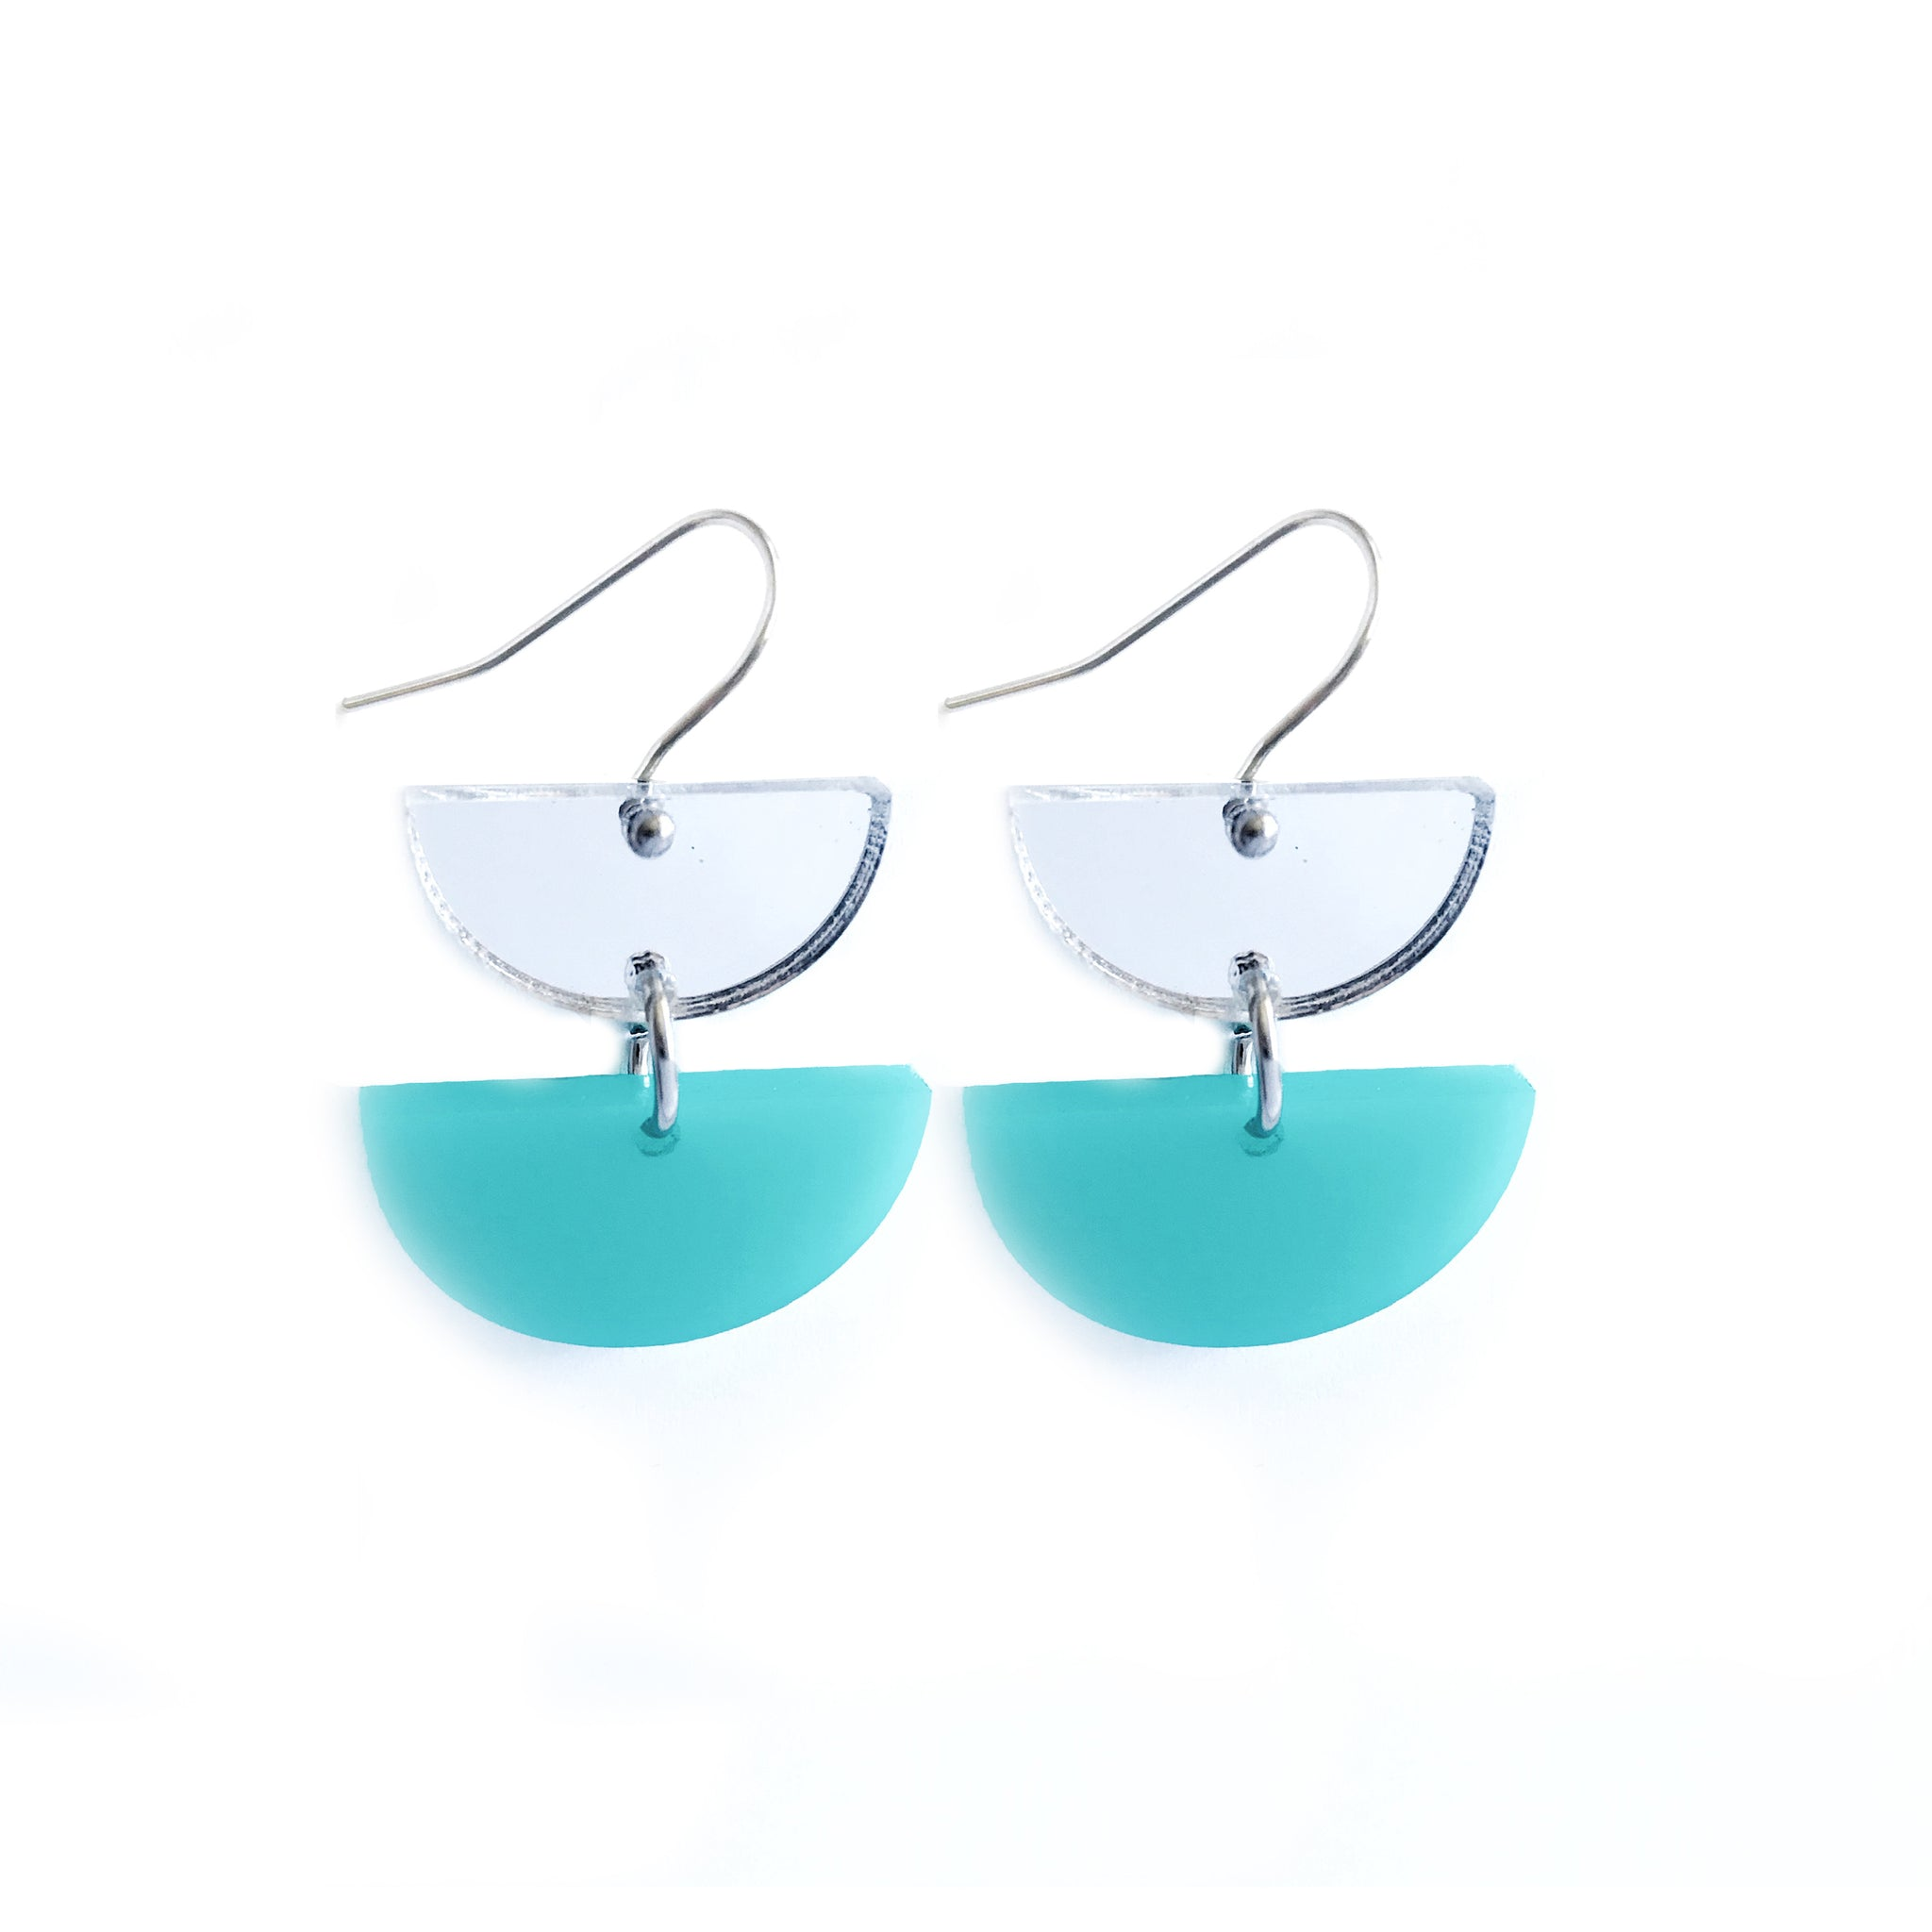 Double Dip Hook Earrings Silver & Mint - Mikmat Designs Earrings Laser Cut Designs